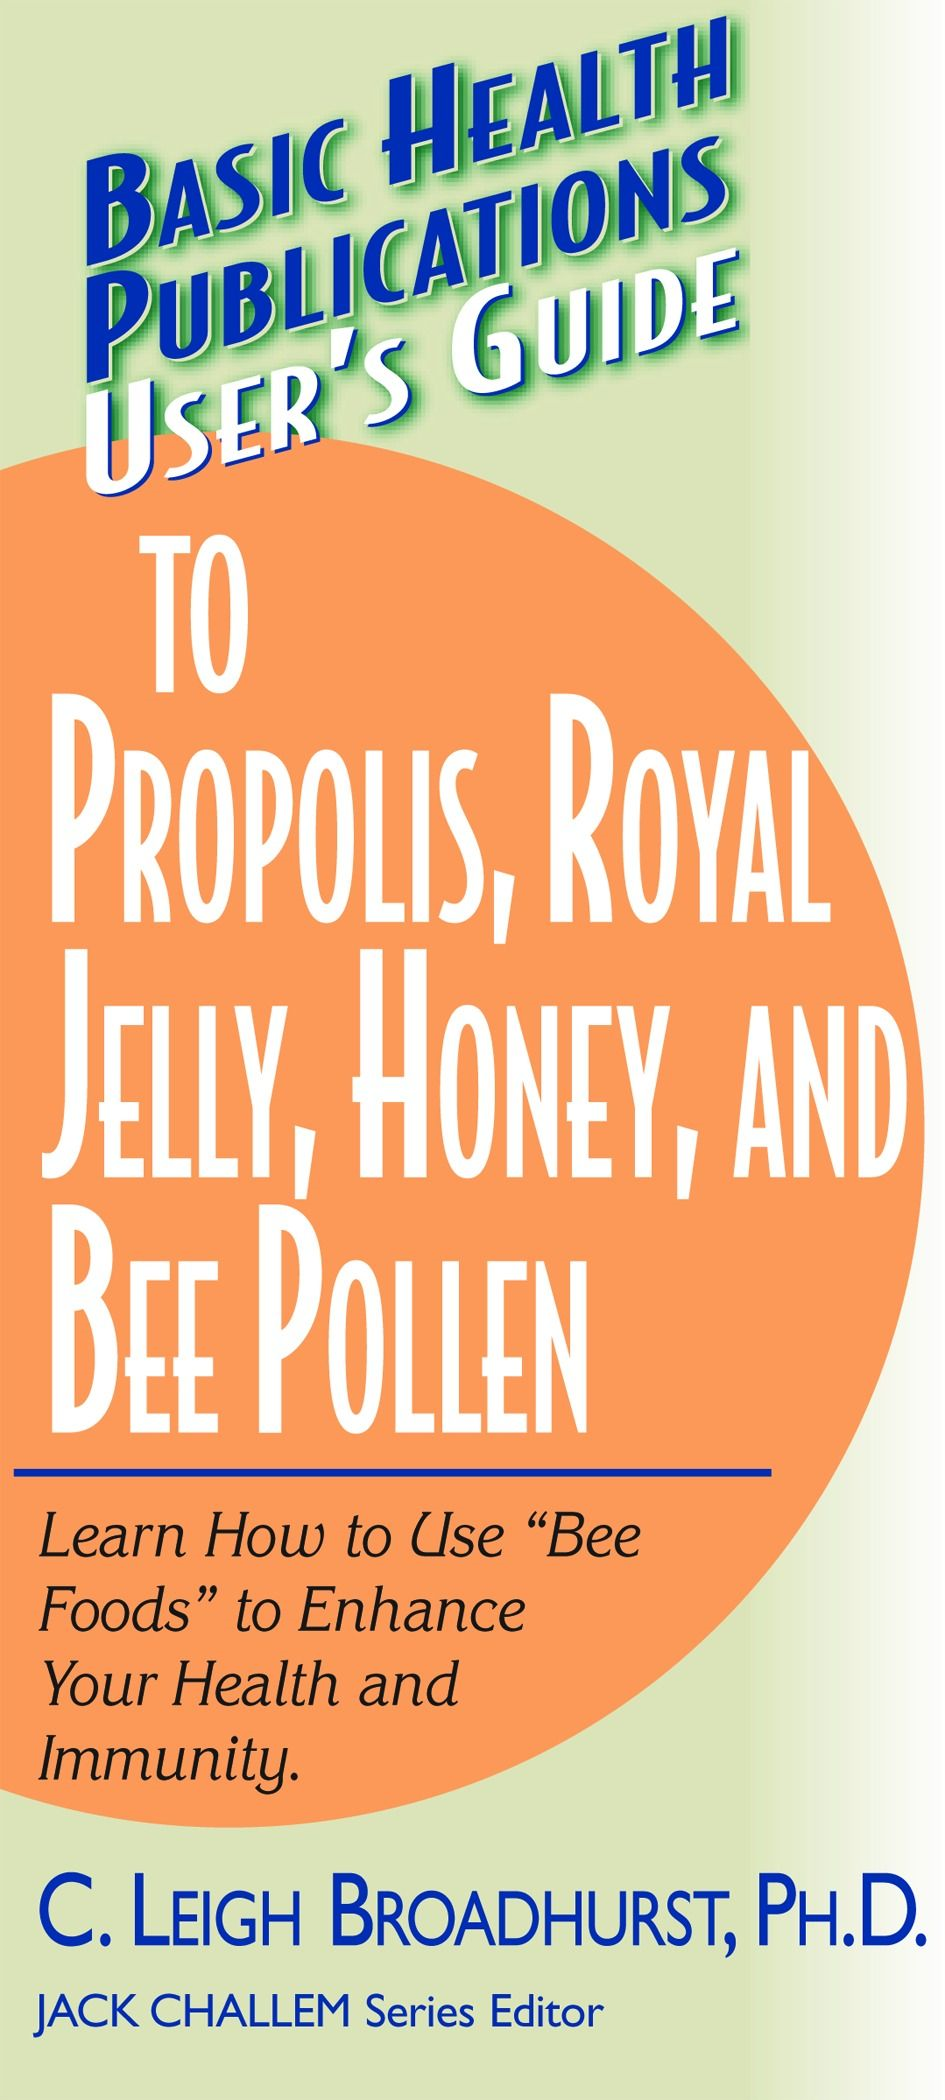 User's Guide to Propolis Royal JellyHoney & Bee Pollen (Basic Health Publications User's Guide)